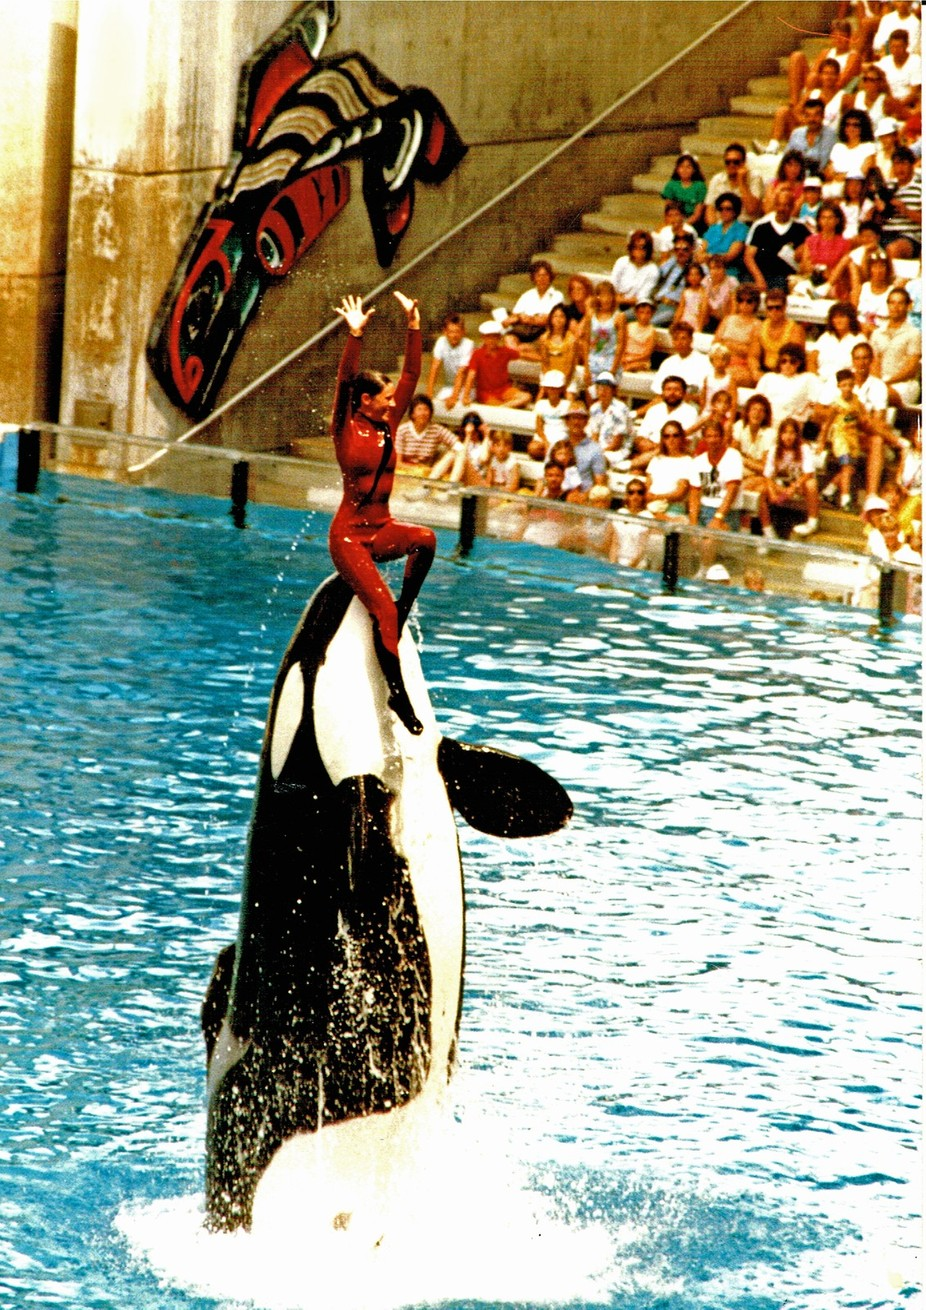 When Sea world had the full Orca show. Never to be seen again.